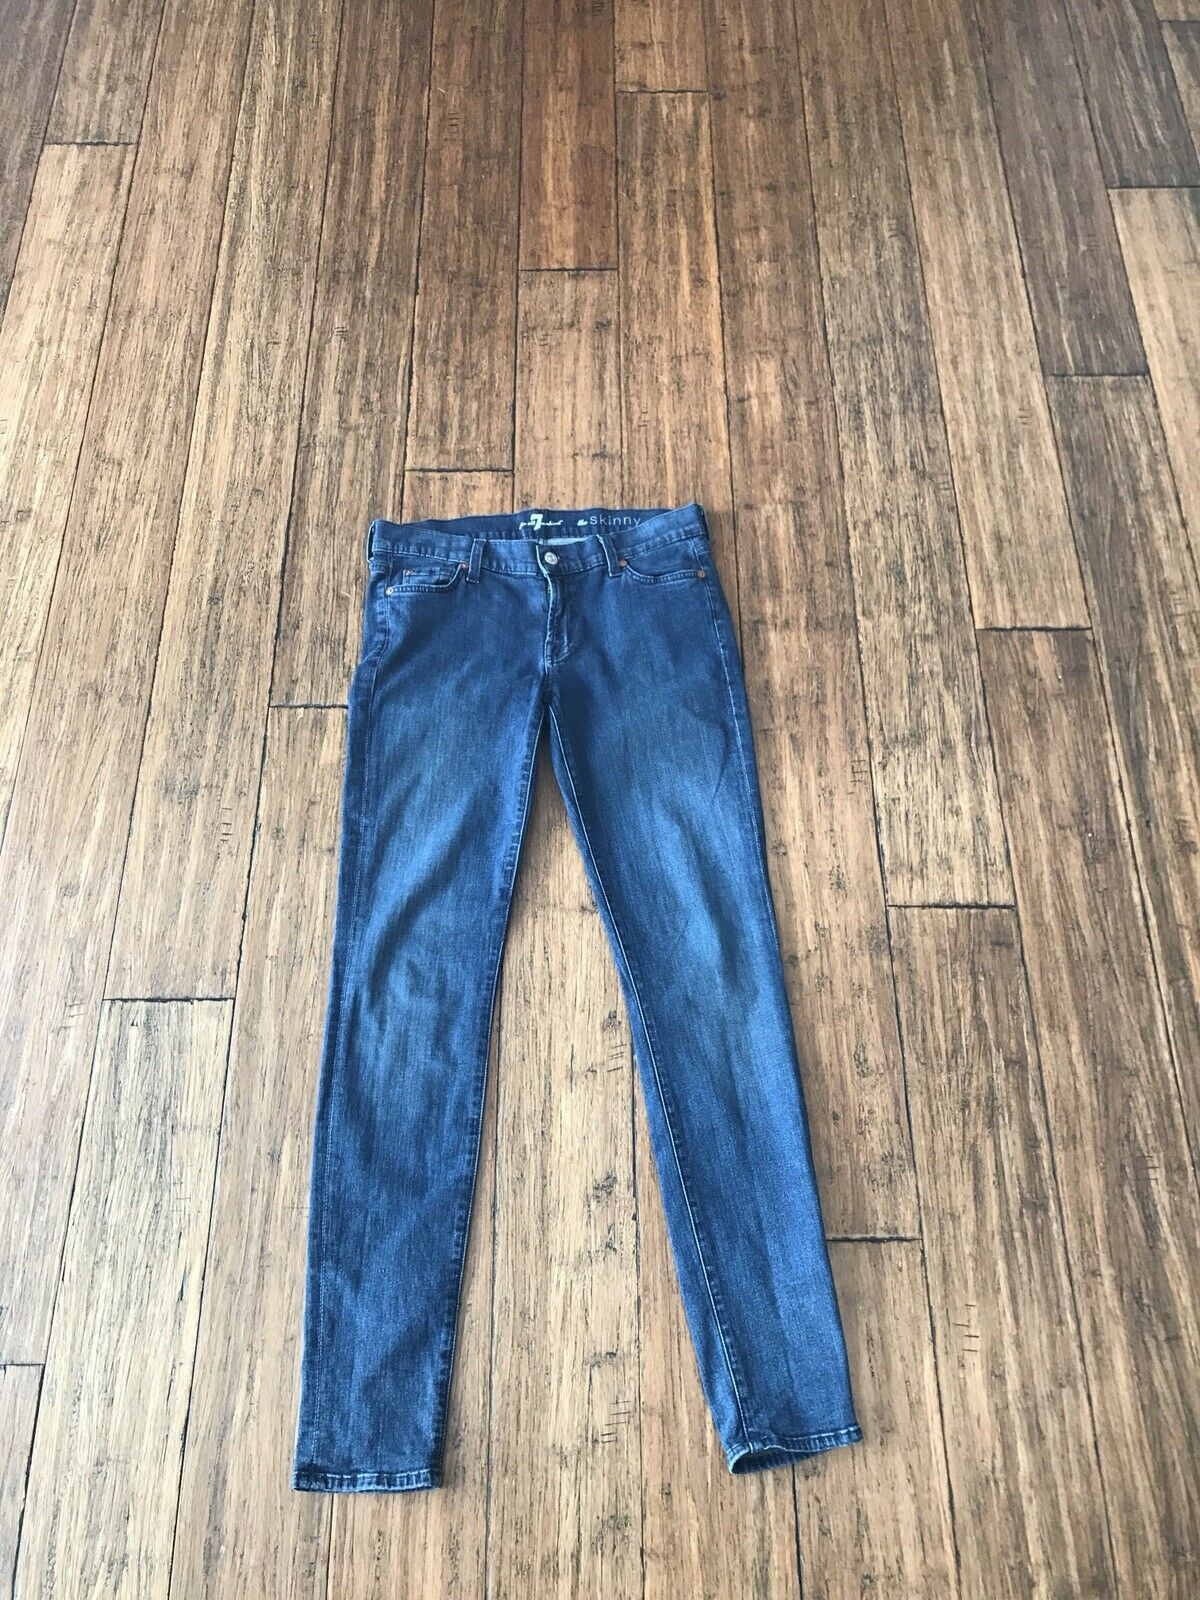 7 For All Mankind Women's Jeans The Skinny Size 29